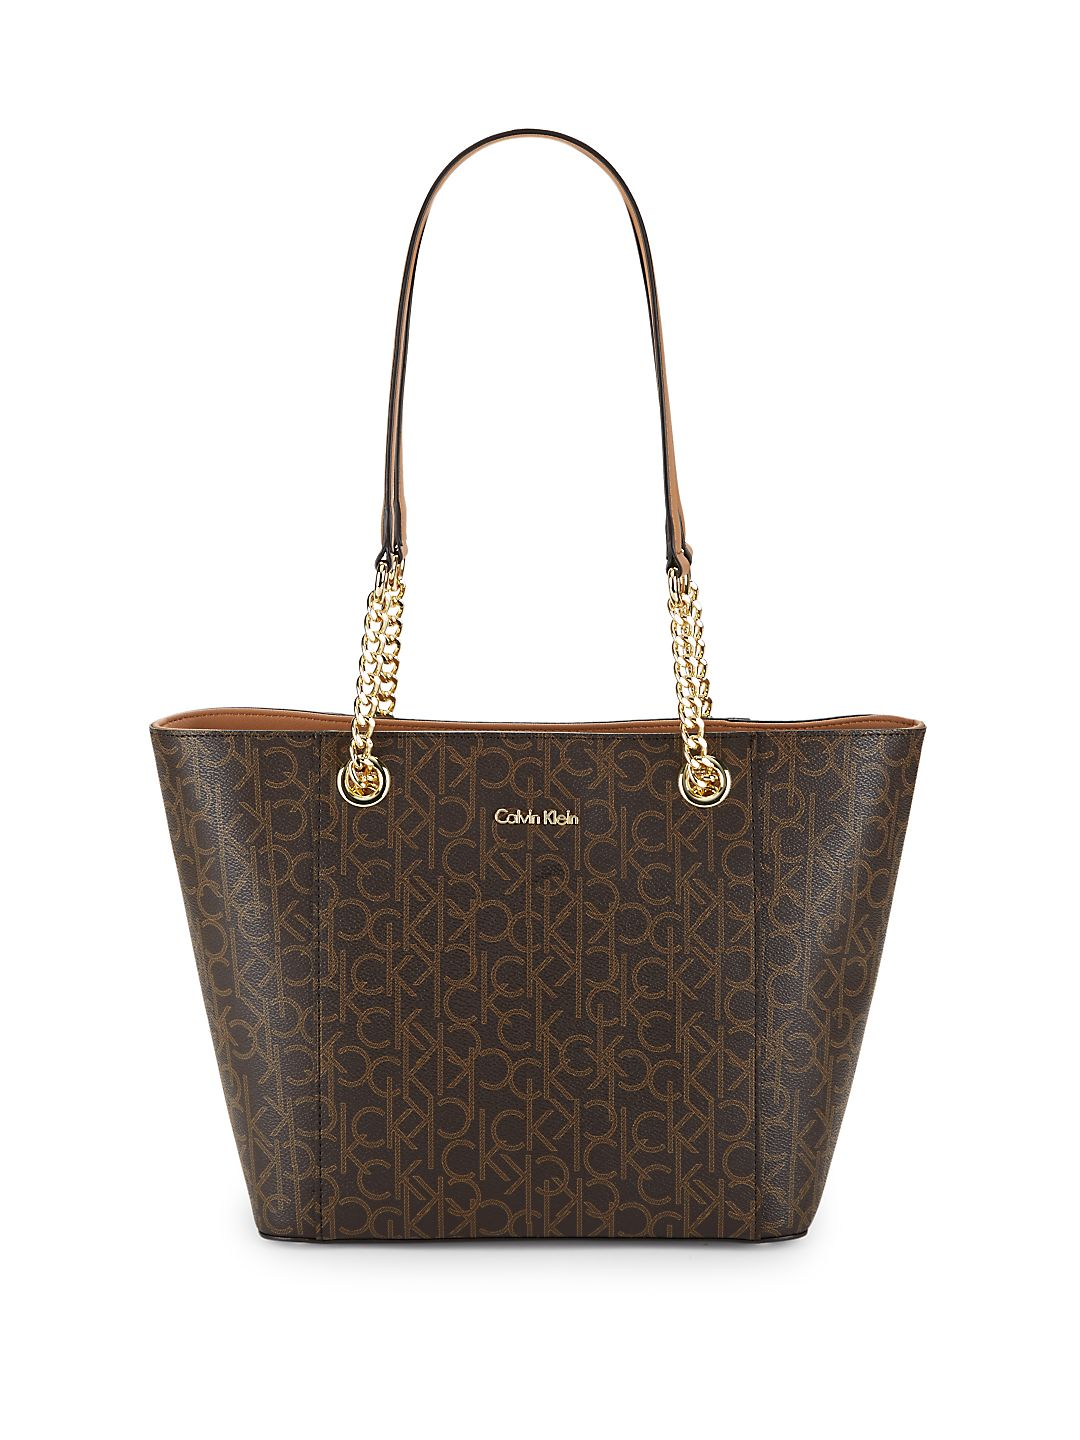 Top Zip Leather Tote